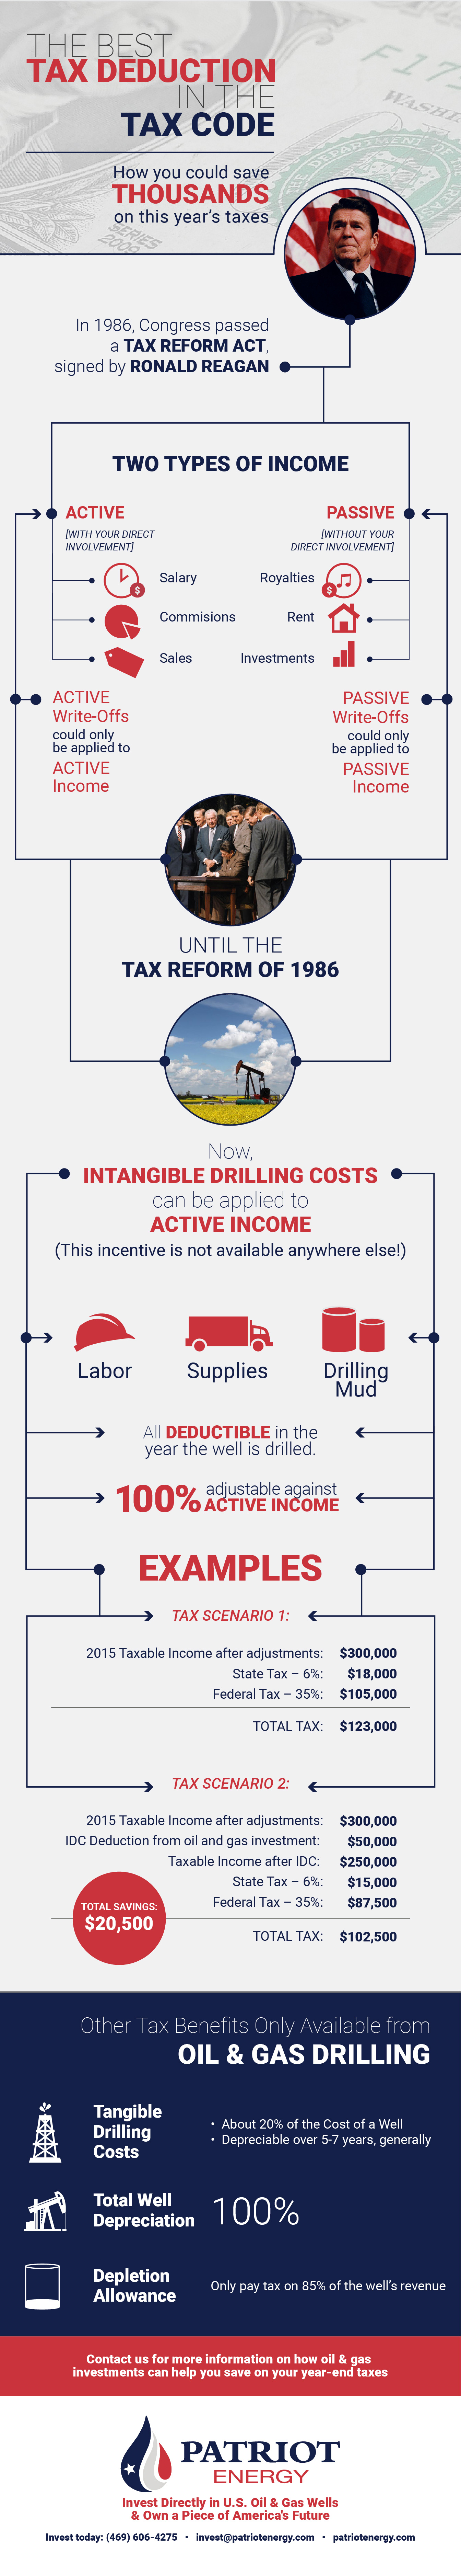 Infographic 2015 Tax Breaks For Oil & Gas